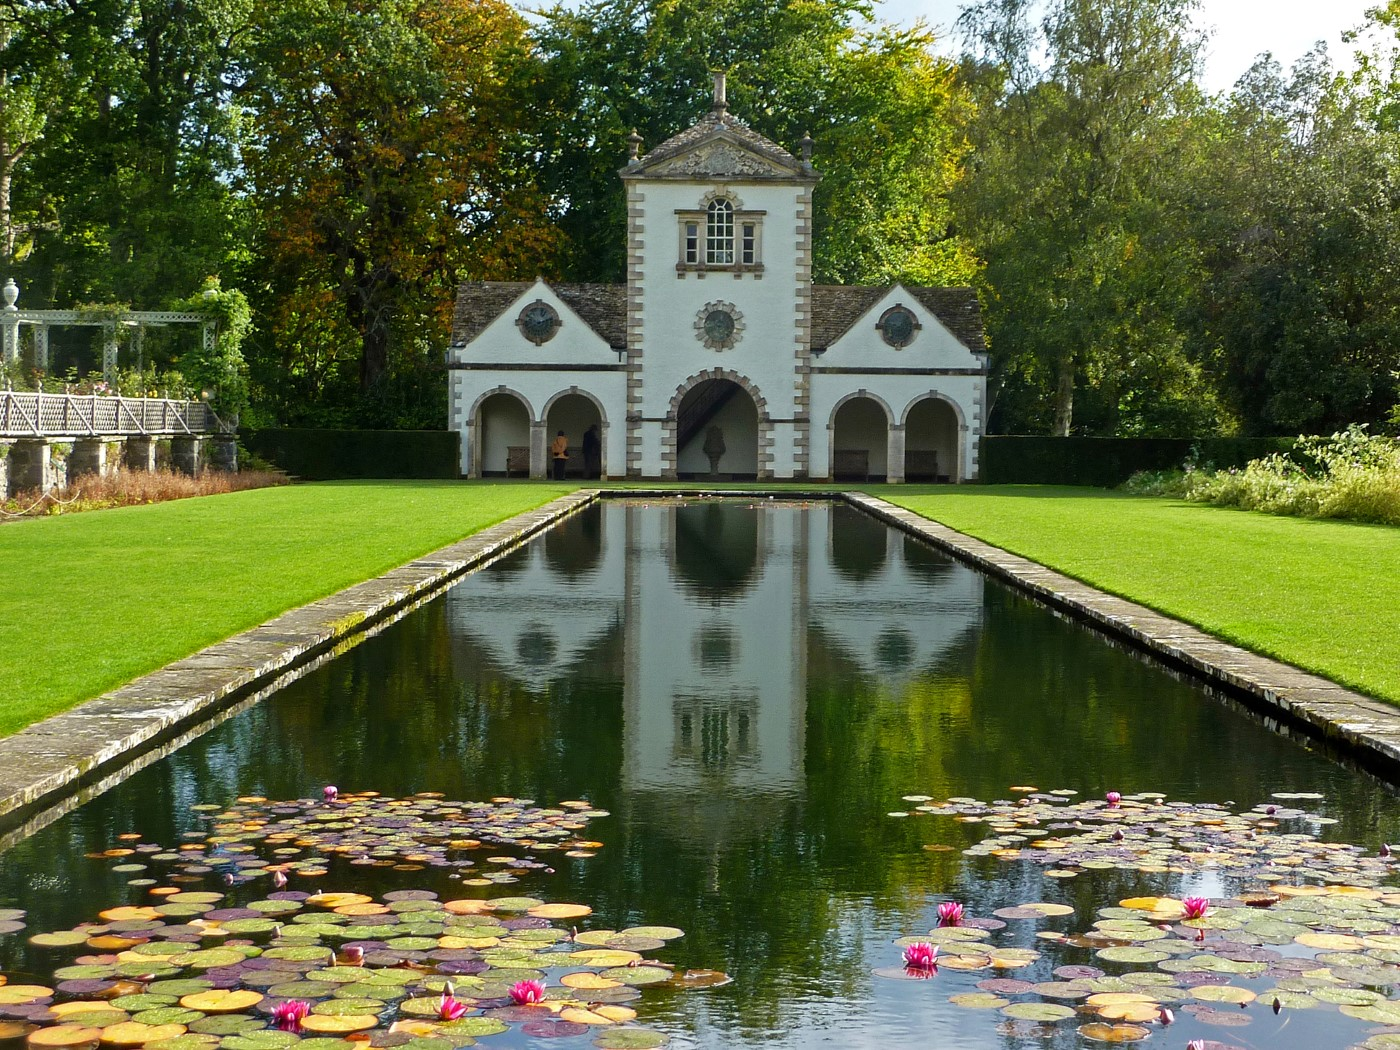 BODNANT REFLECTIONS by Jim Chown